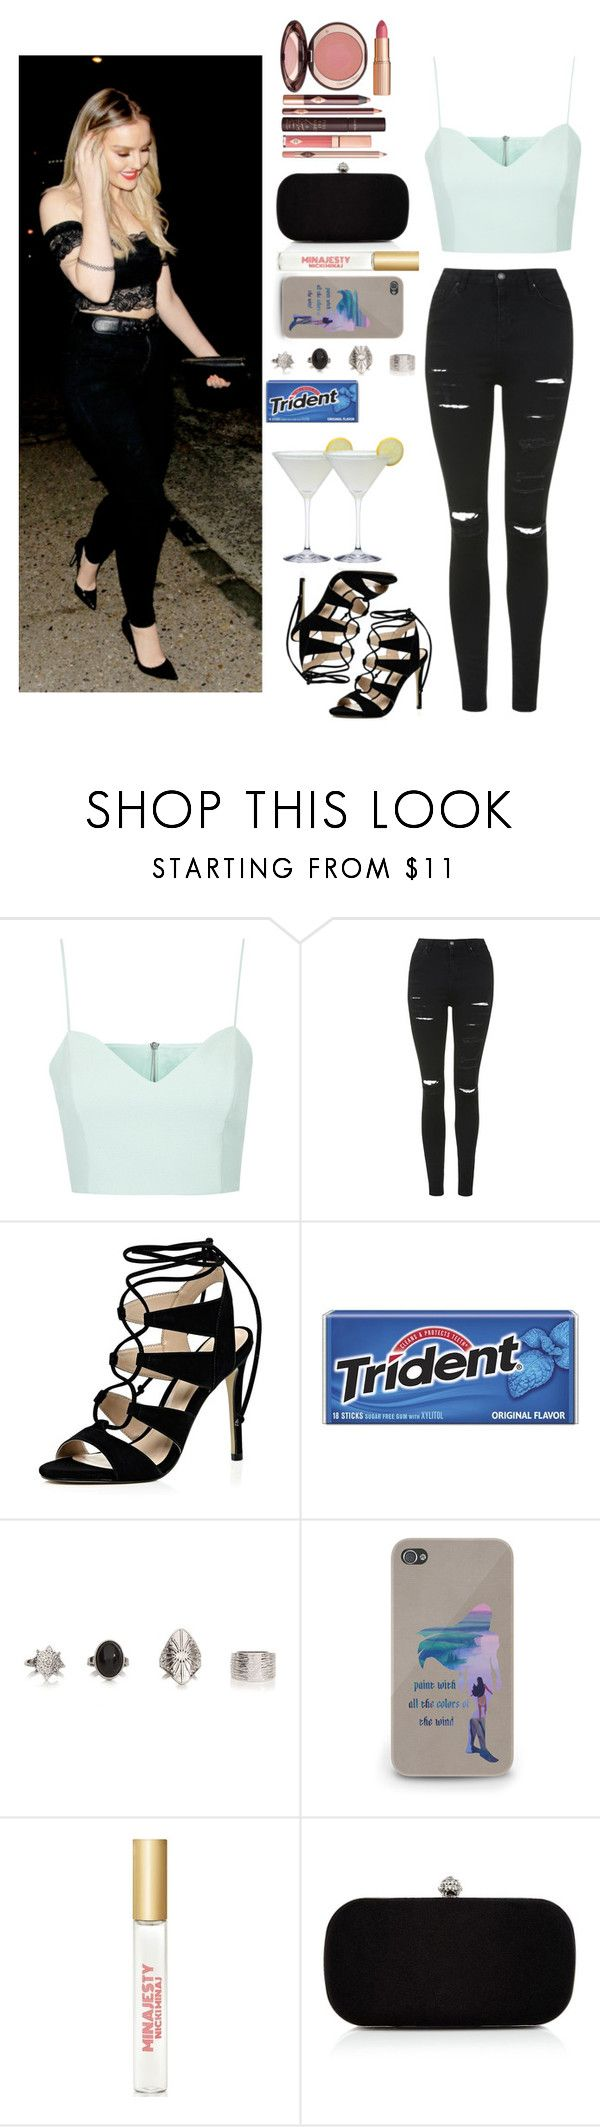 """""""Night in london with Perrie"""" by xhoneymoonavenuex ❤ liked on Polyvore featuring Topshop, River Island, Nicki Minaj, Precis Petite and Charlotte Tilbury"""